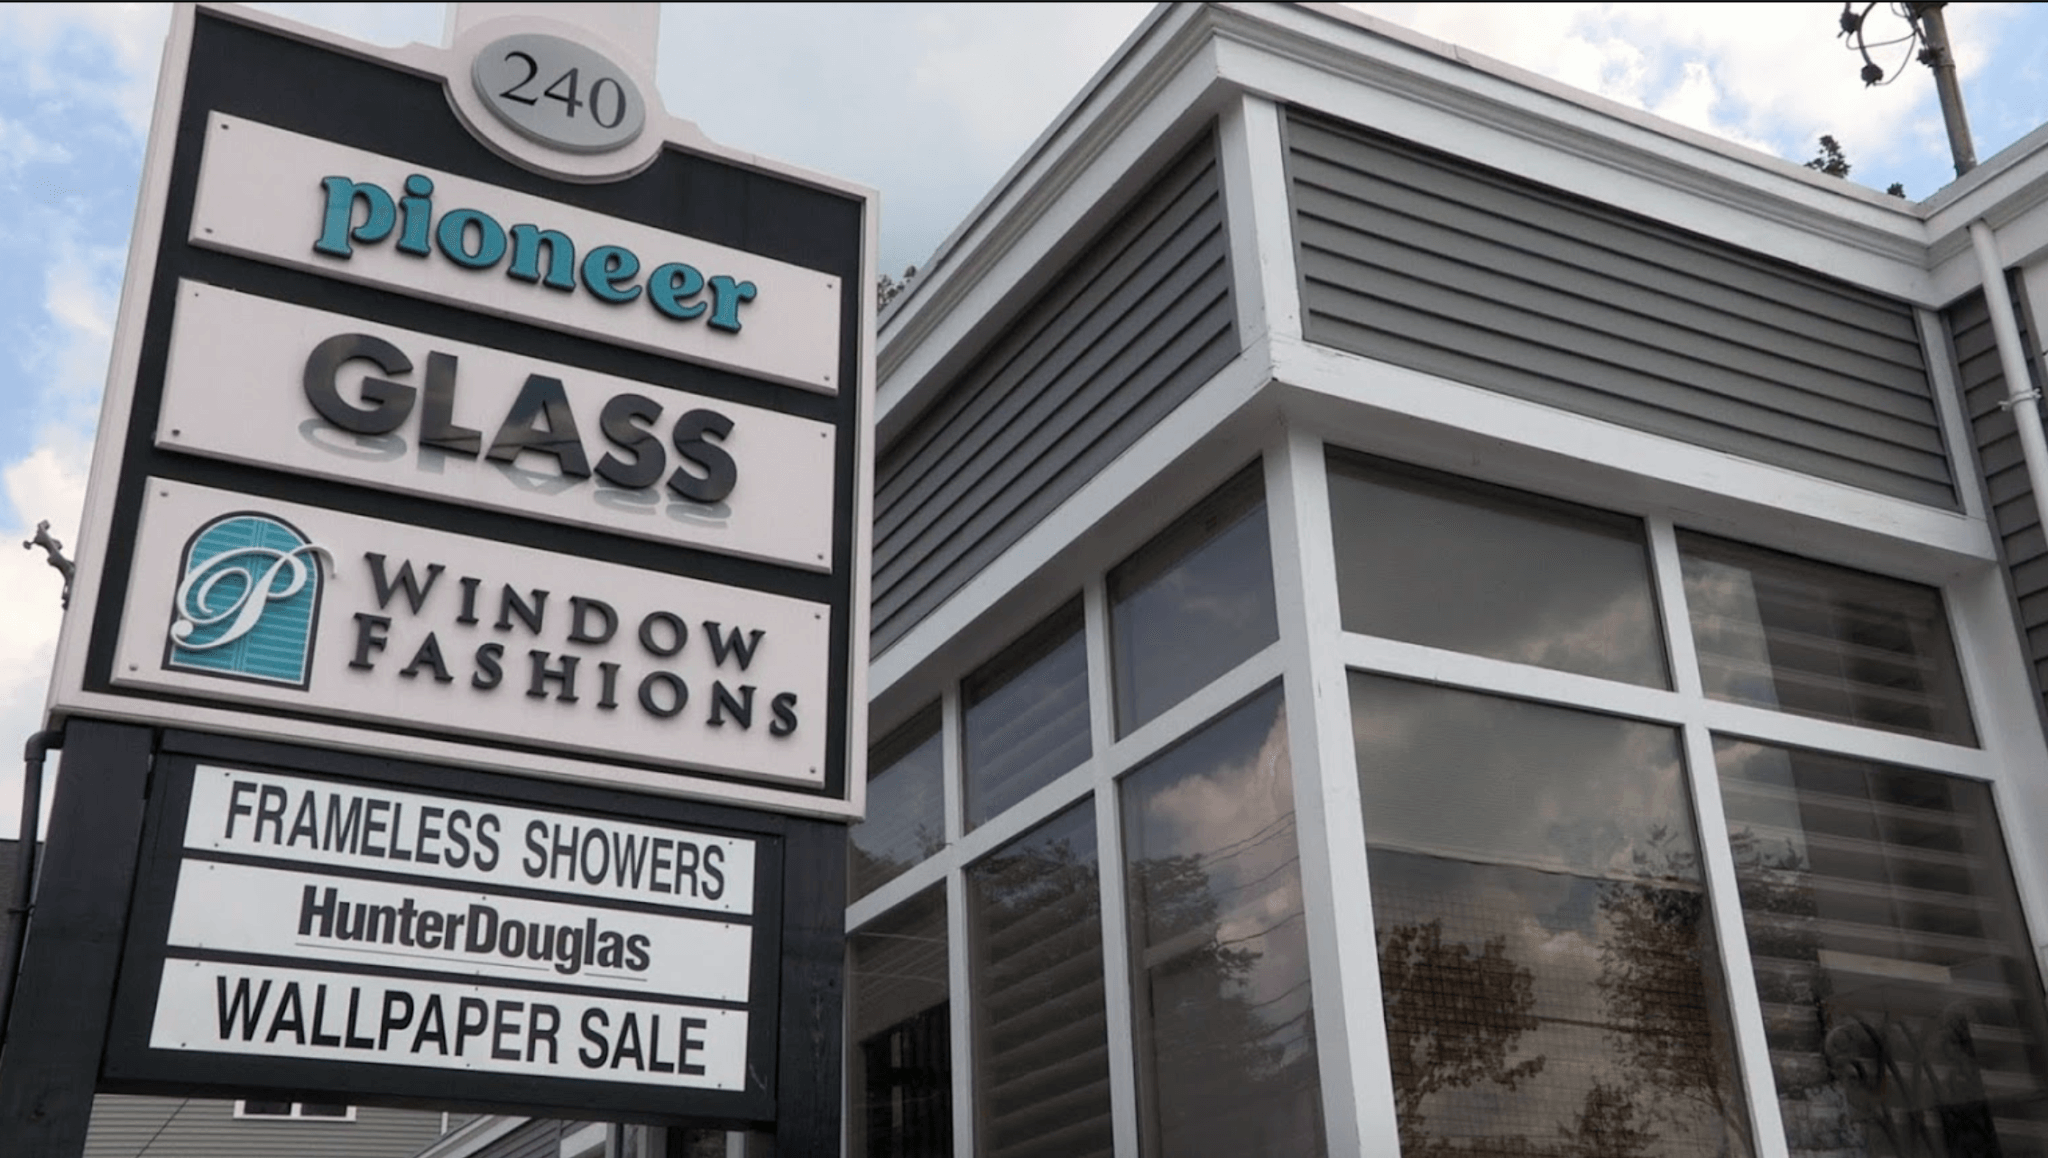 Pioneer Glass sign building